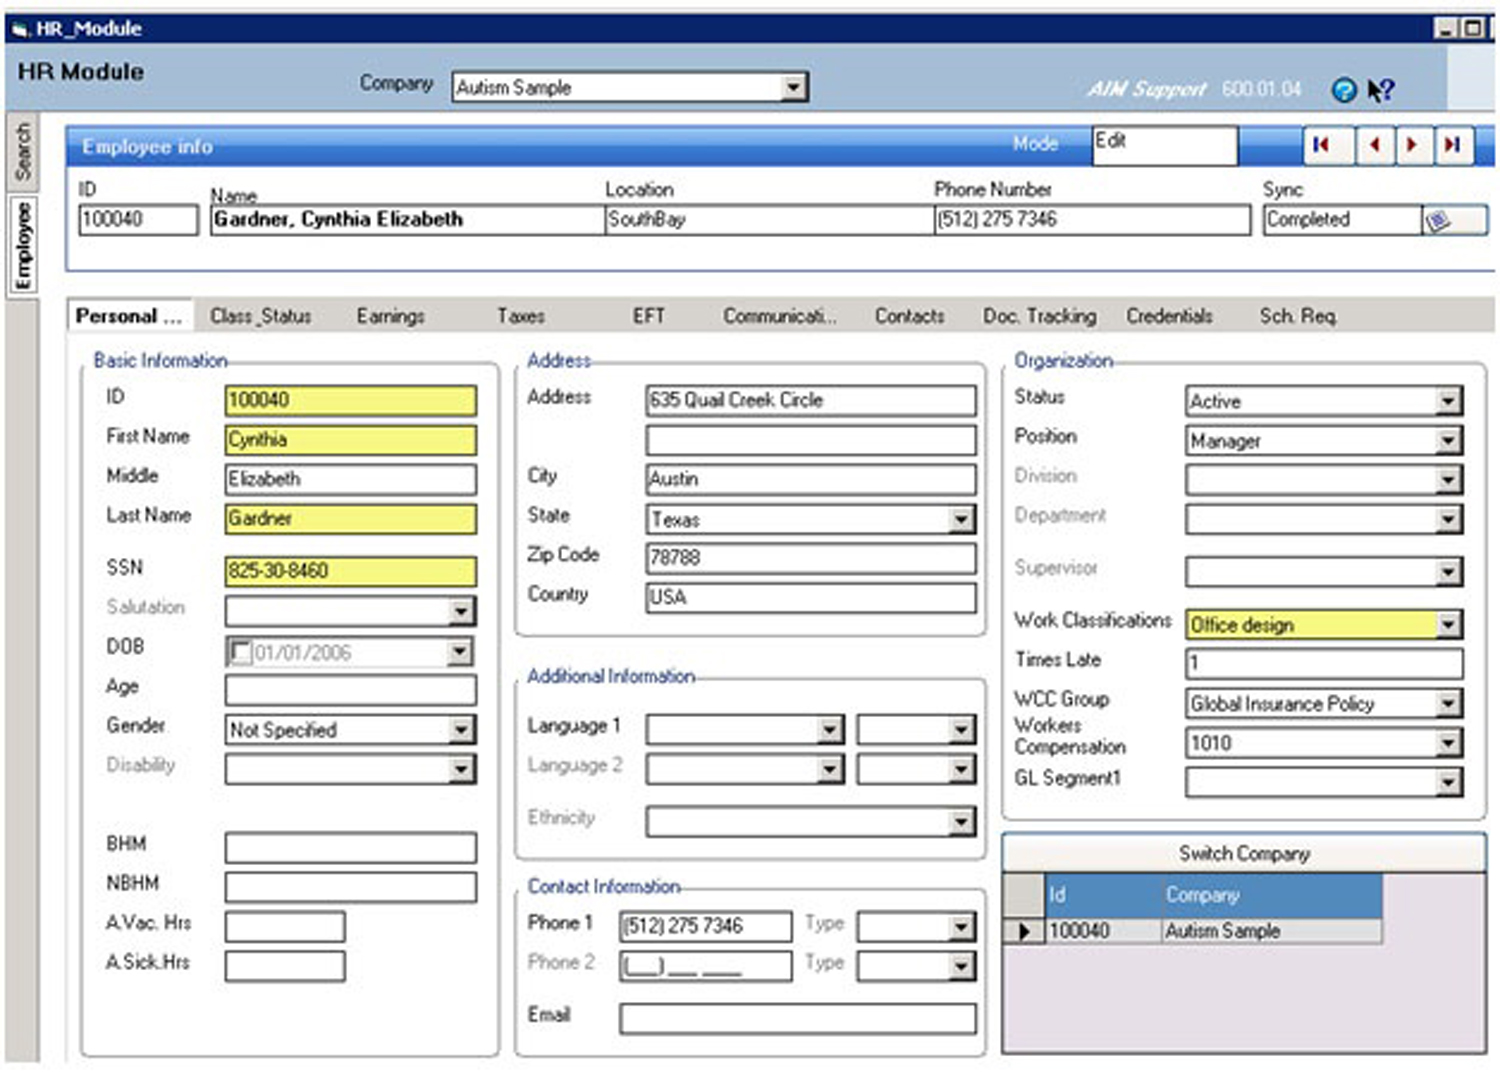 TherapistMate Software - Payroll